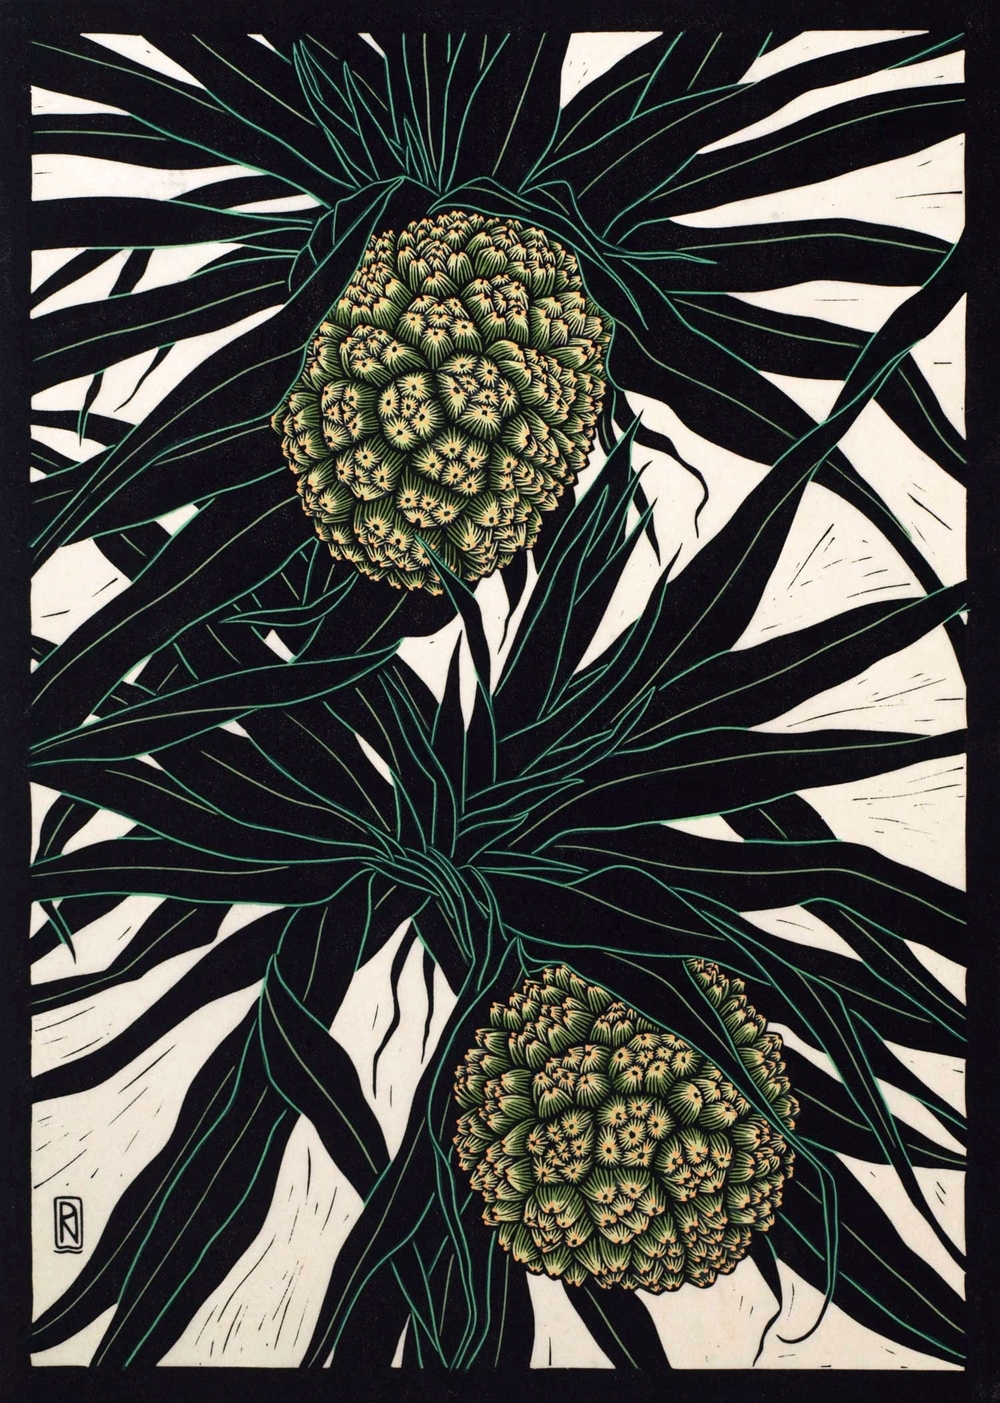 PANDANUS FRUIT  49 X 35 CM EDITION OF 50  HAND COLOURED LINOCUT ON HANDMADE JAPANESE PAPER  $1,050